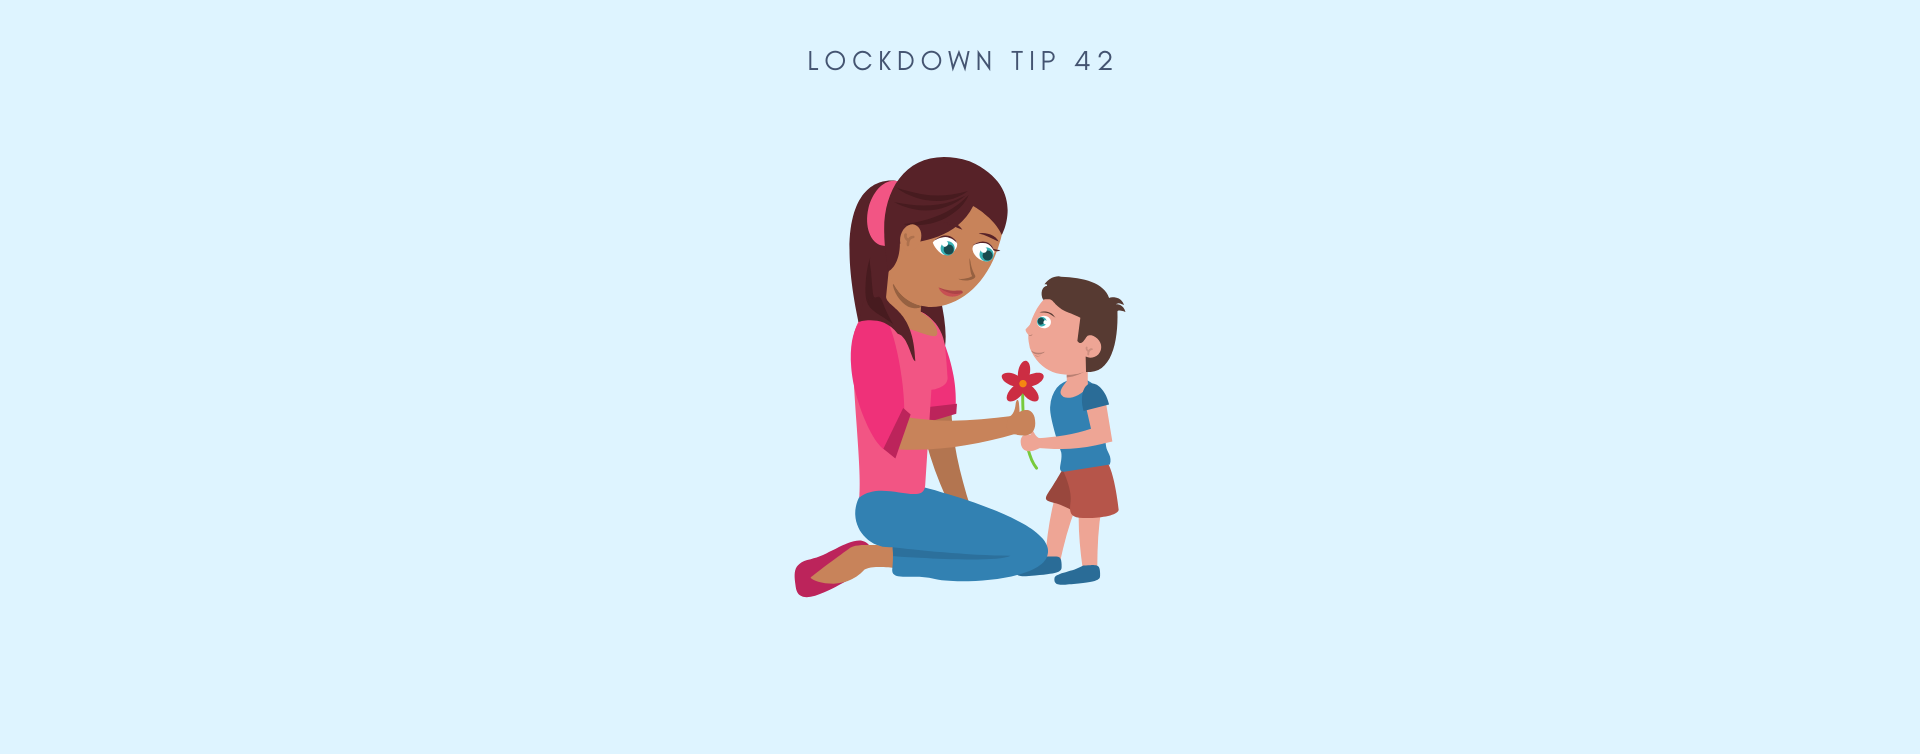 MCSA Lockdown Tip 42